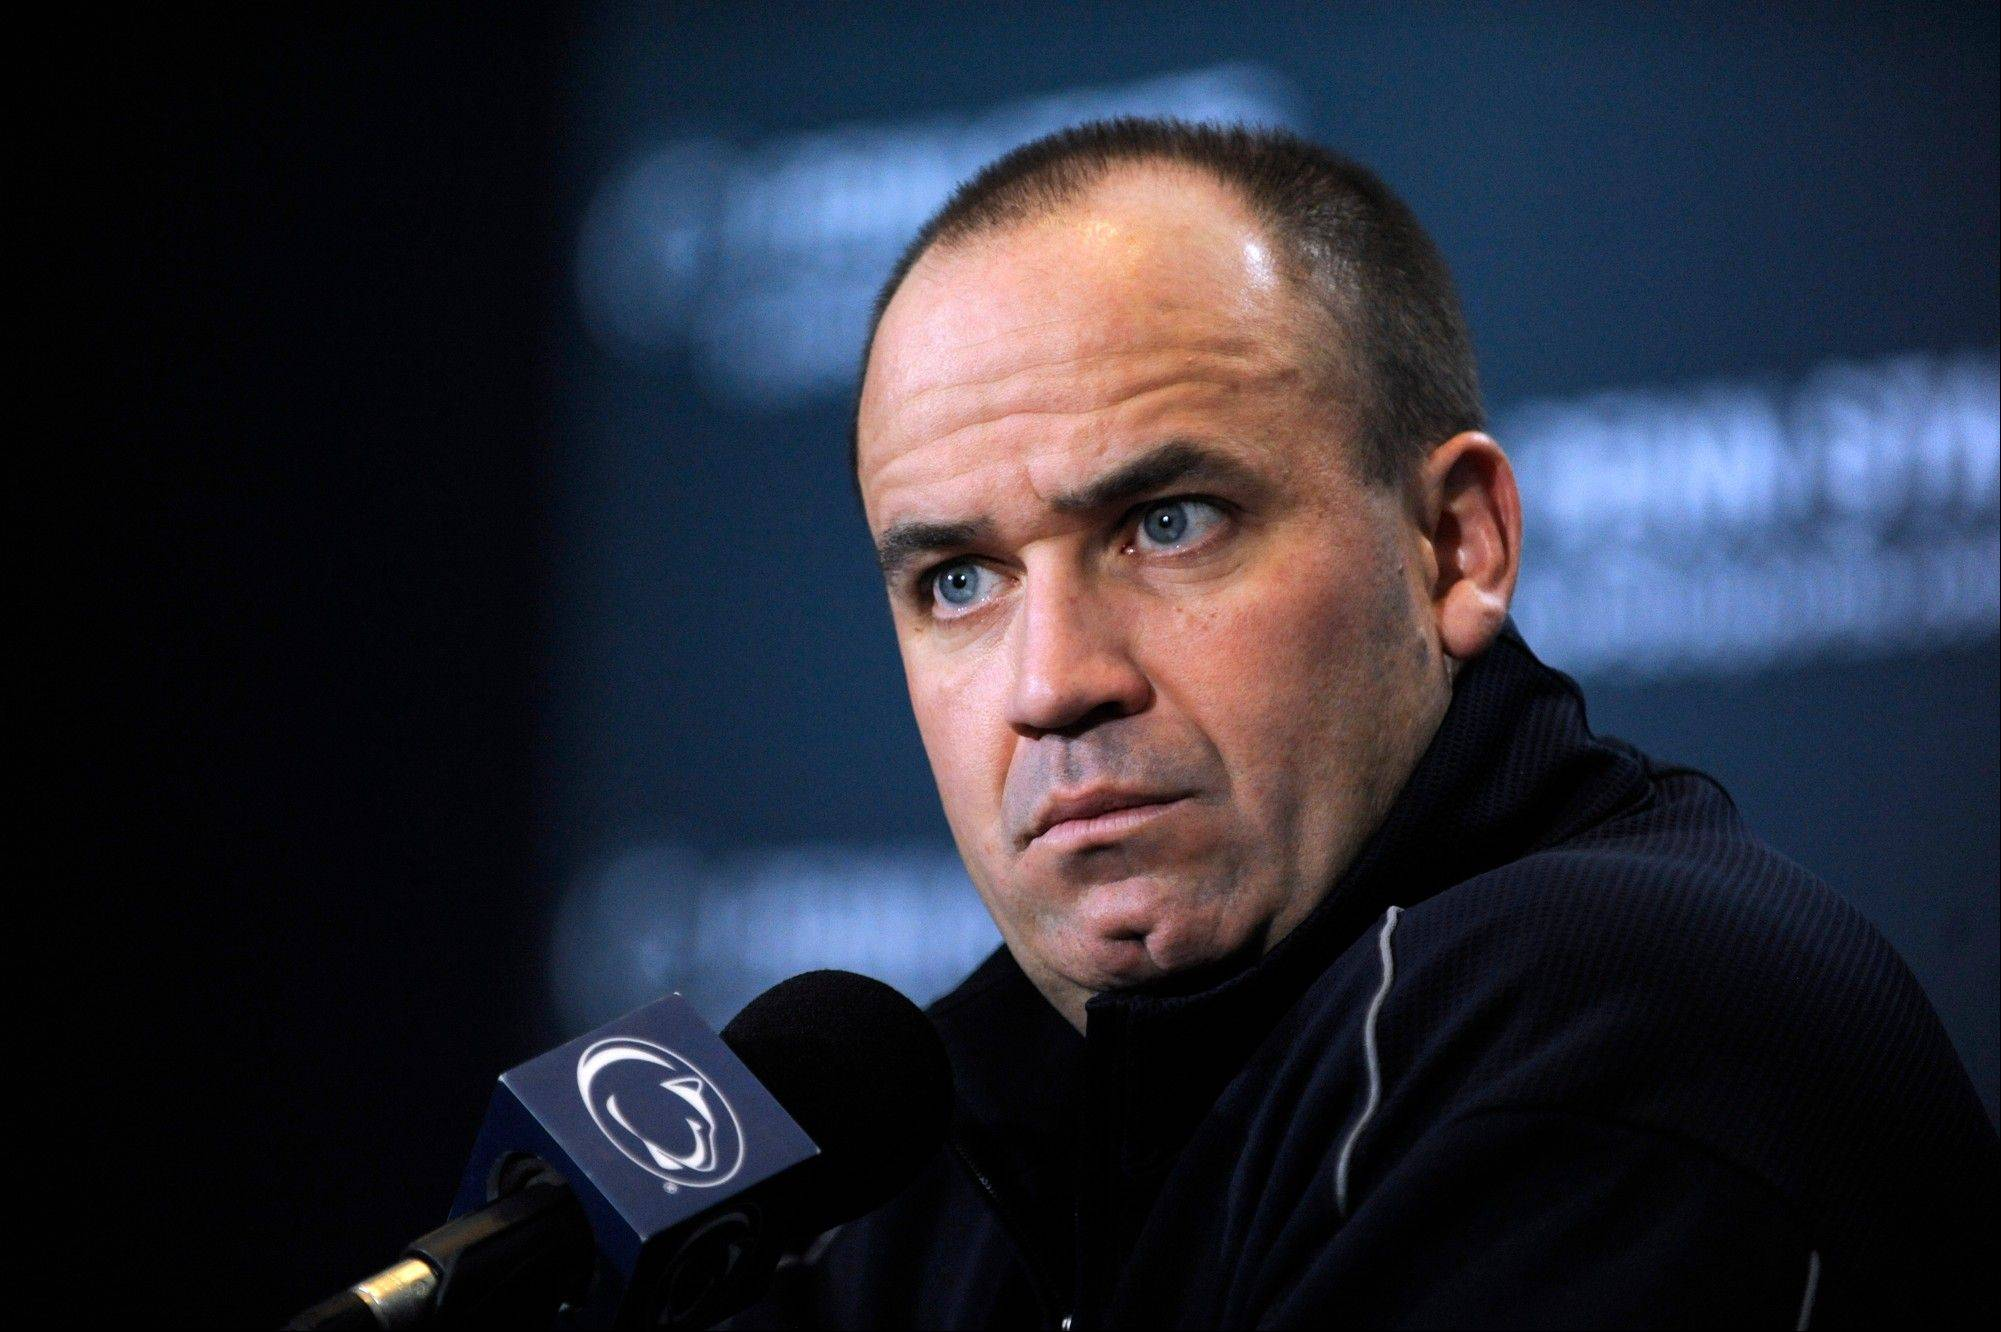 Penn State football head coach Bill O'Brien talks to the media Tuesday during his weekly news conference at Beaver Stadium on the Penn State University campus.